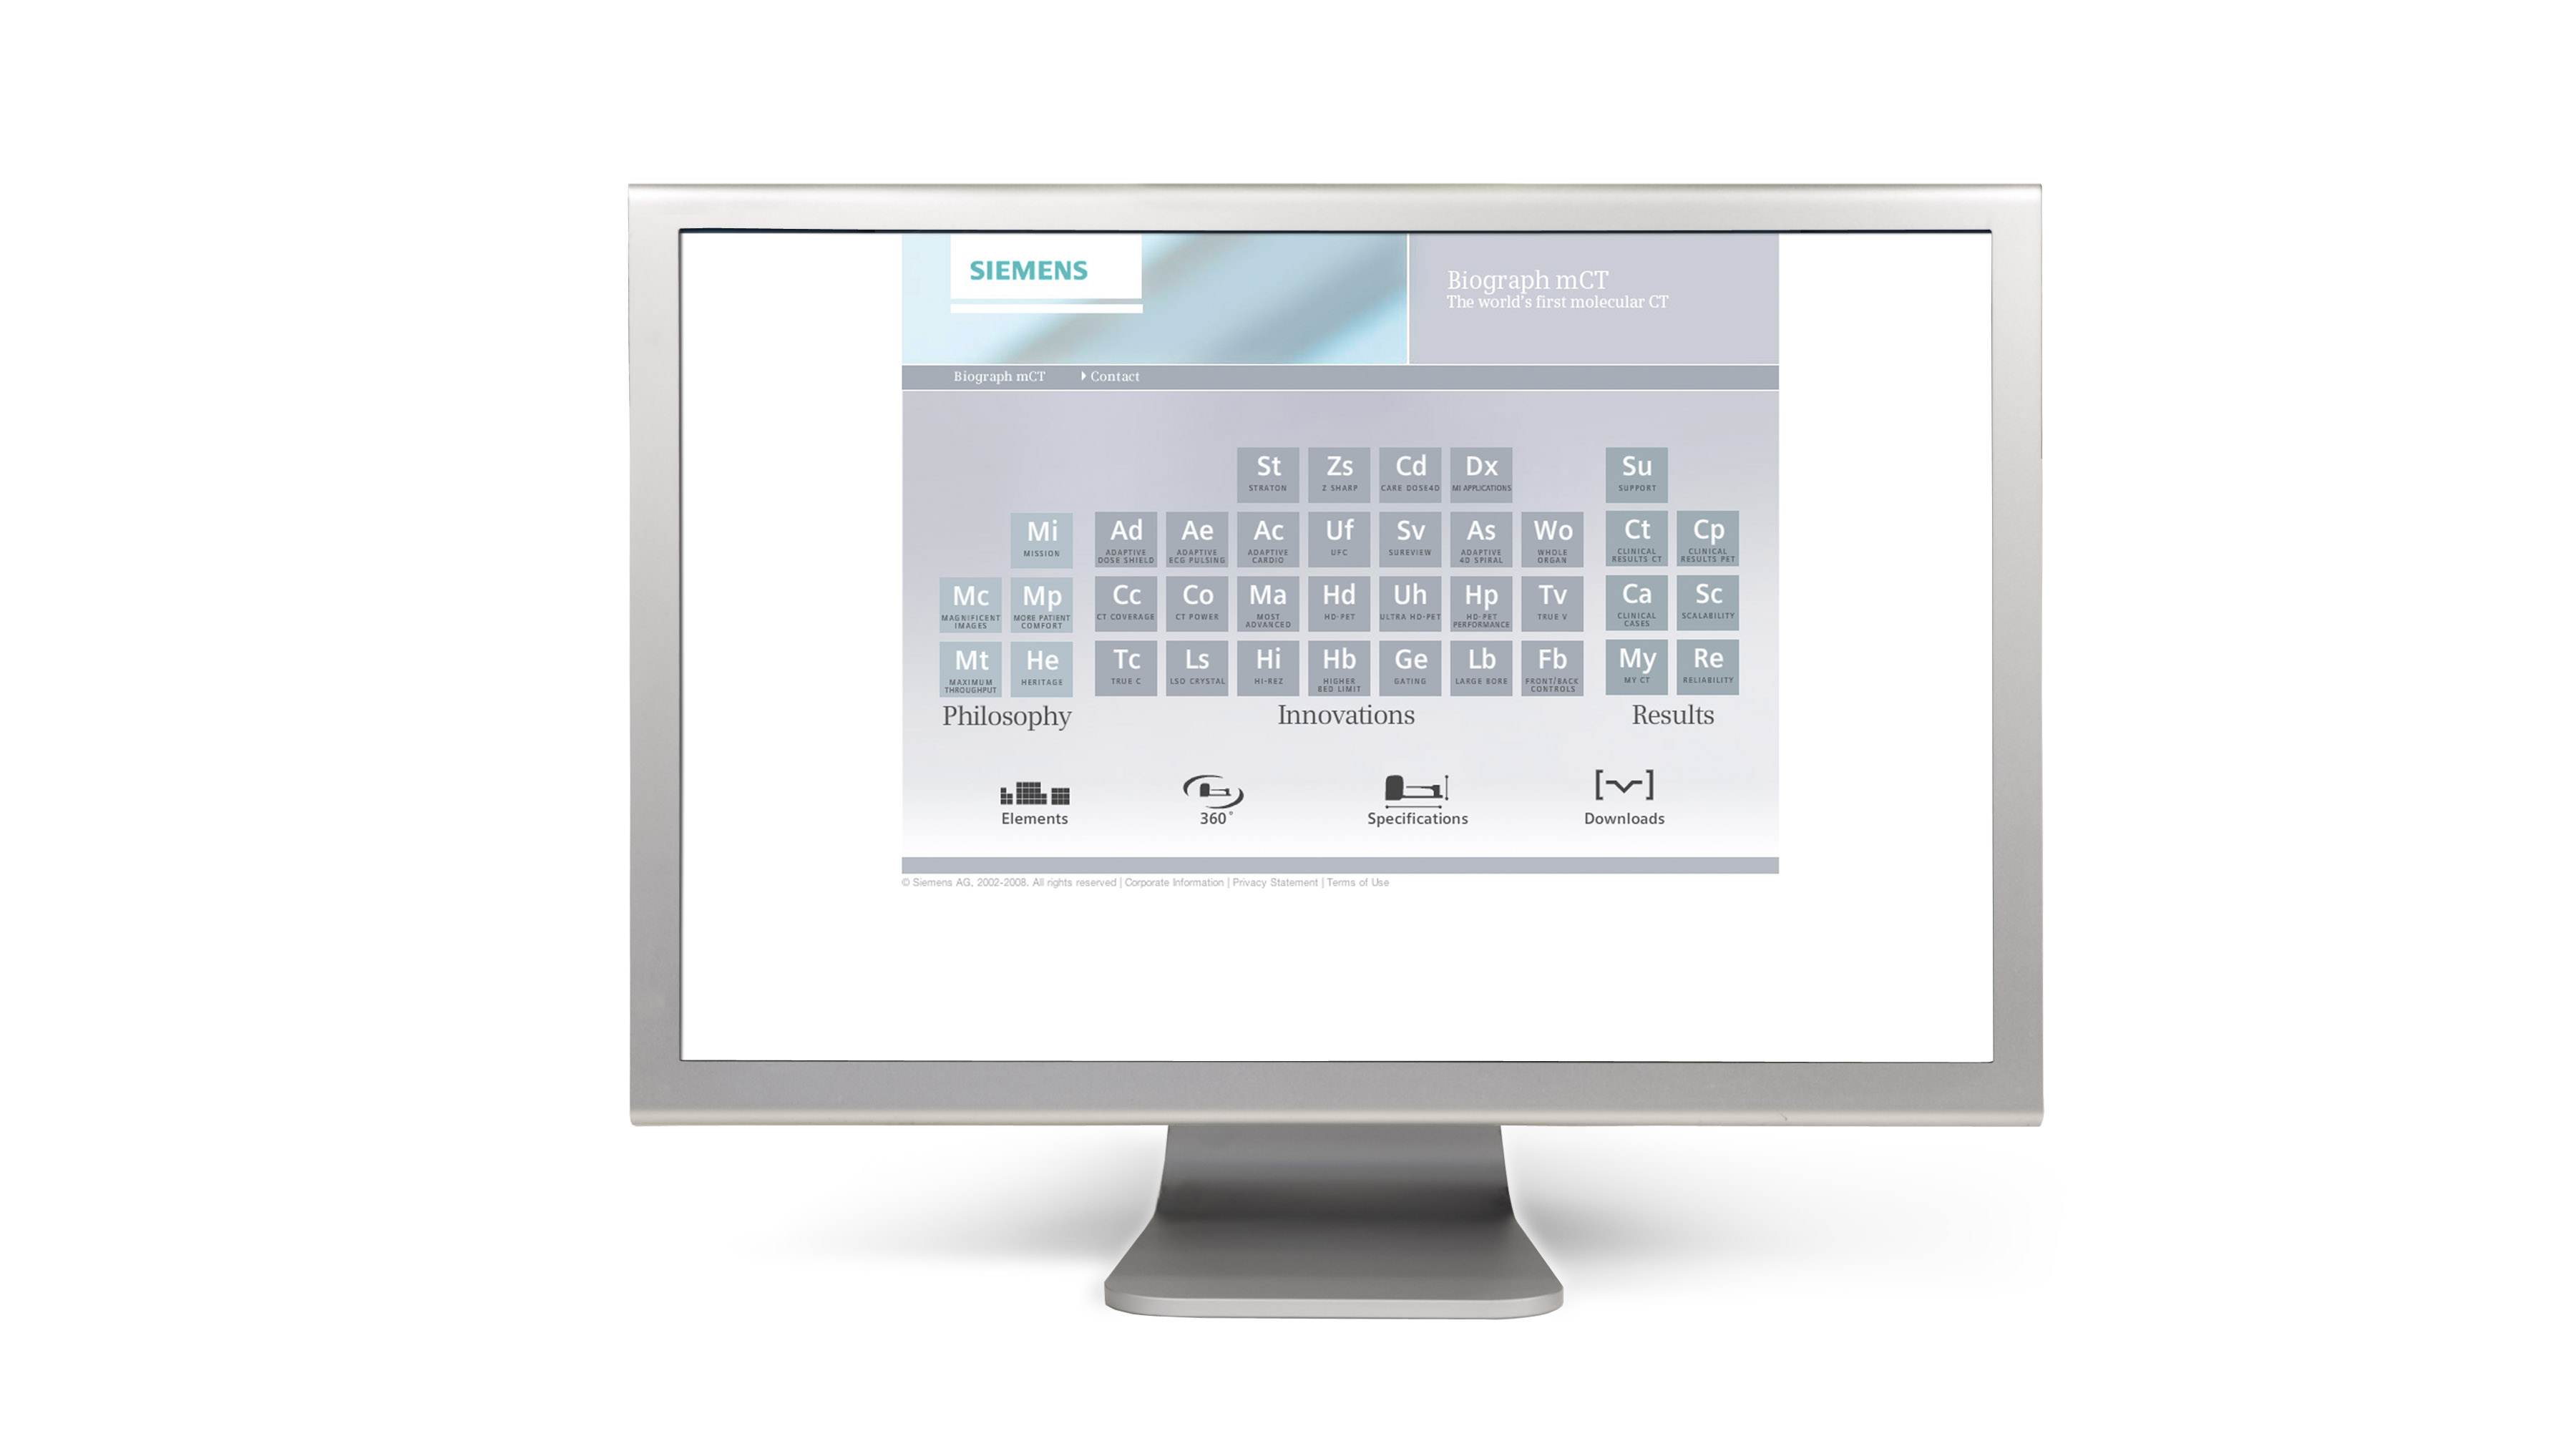 mct3 Siemens Medical Solutions